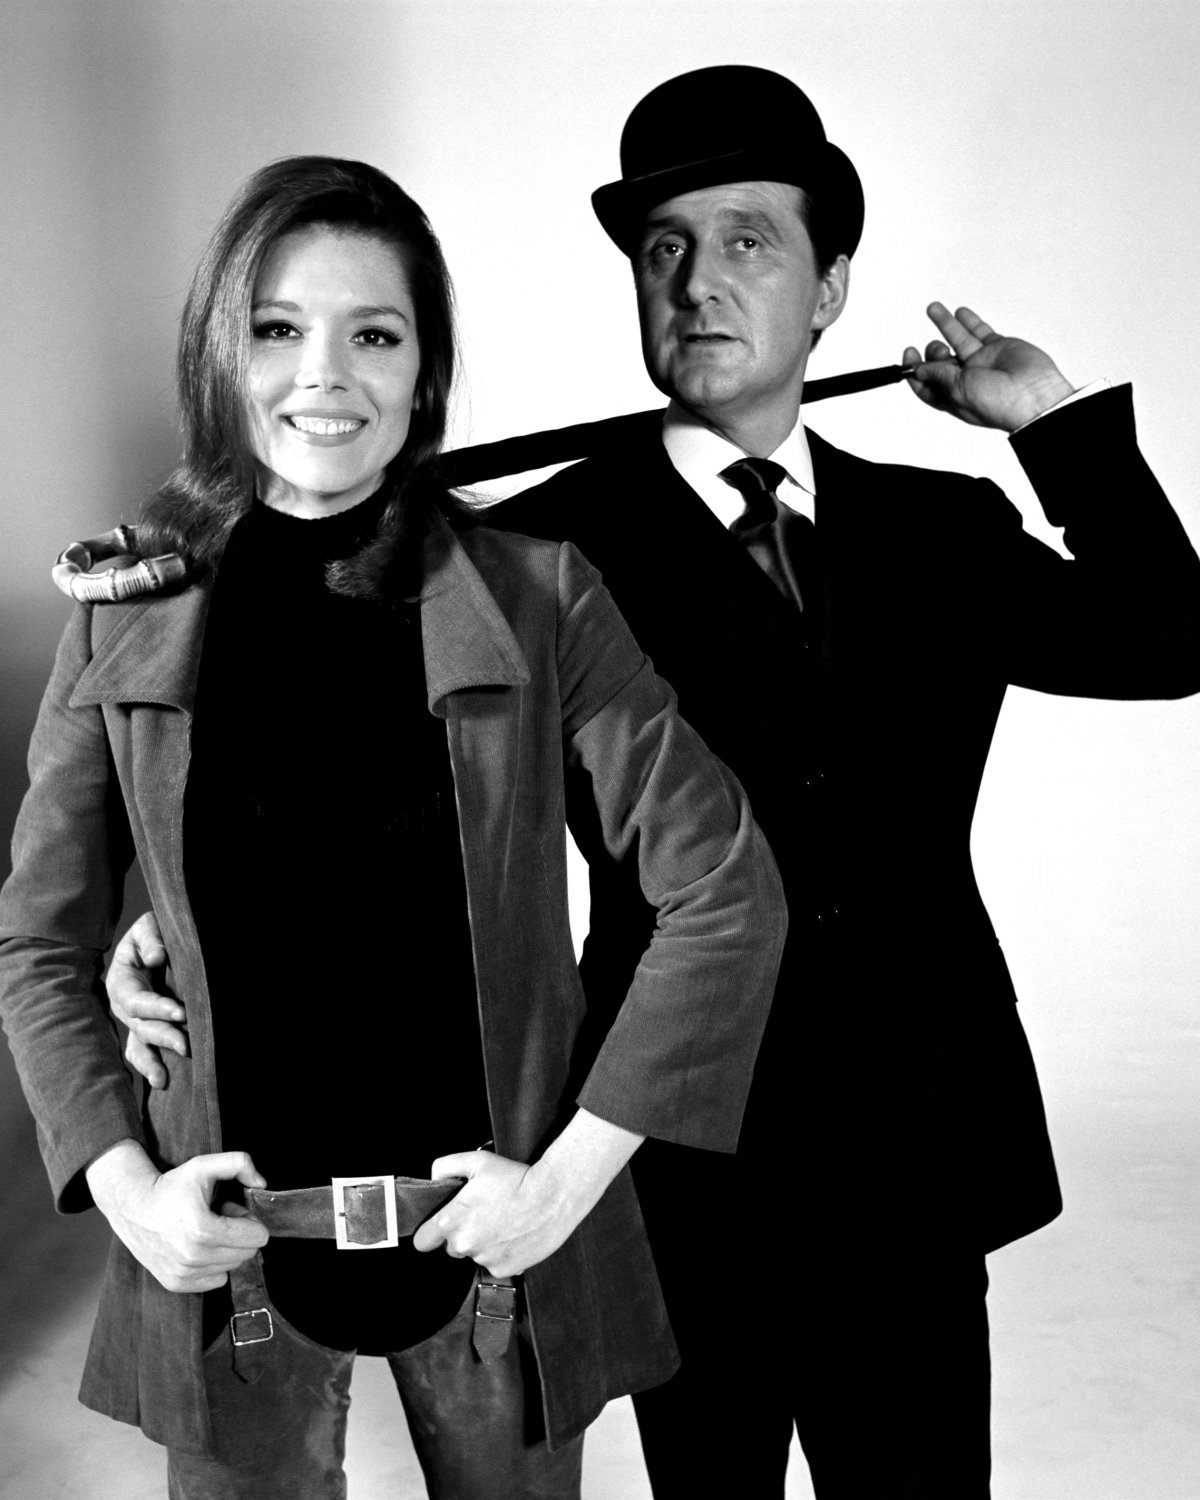 DIANA RIGG AND PATRICK MACNEE IN 'THE AVENGERS' - 8X10 PUBLICITY PHOTO (EE-025)